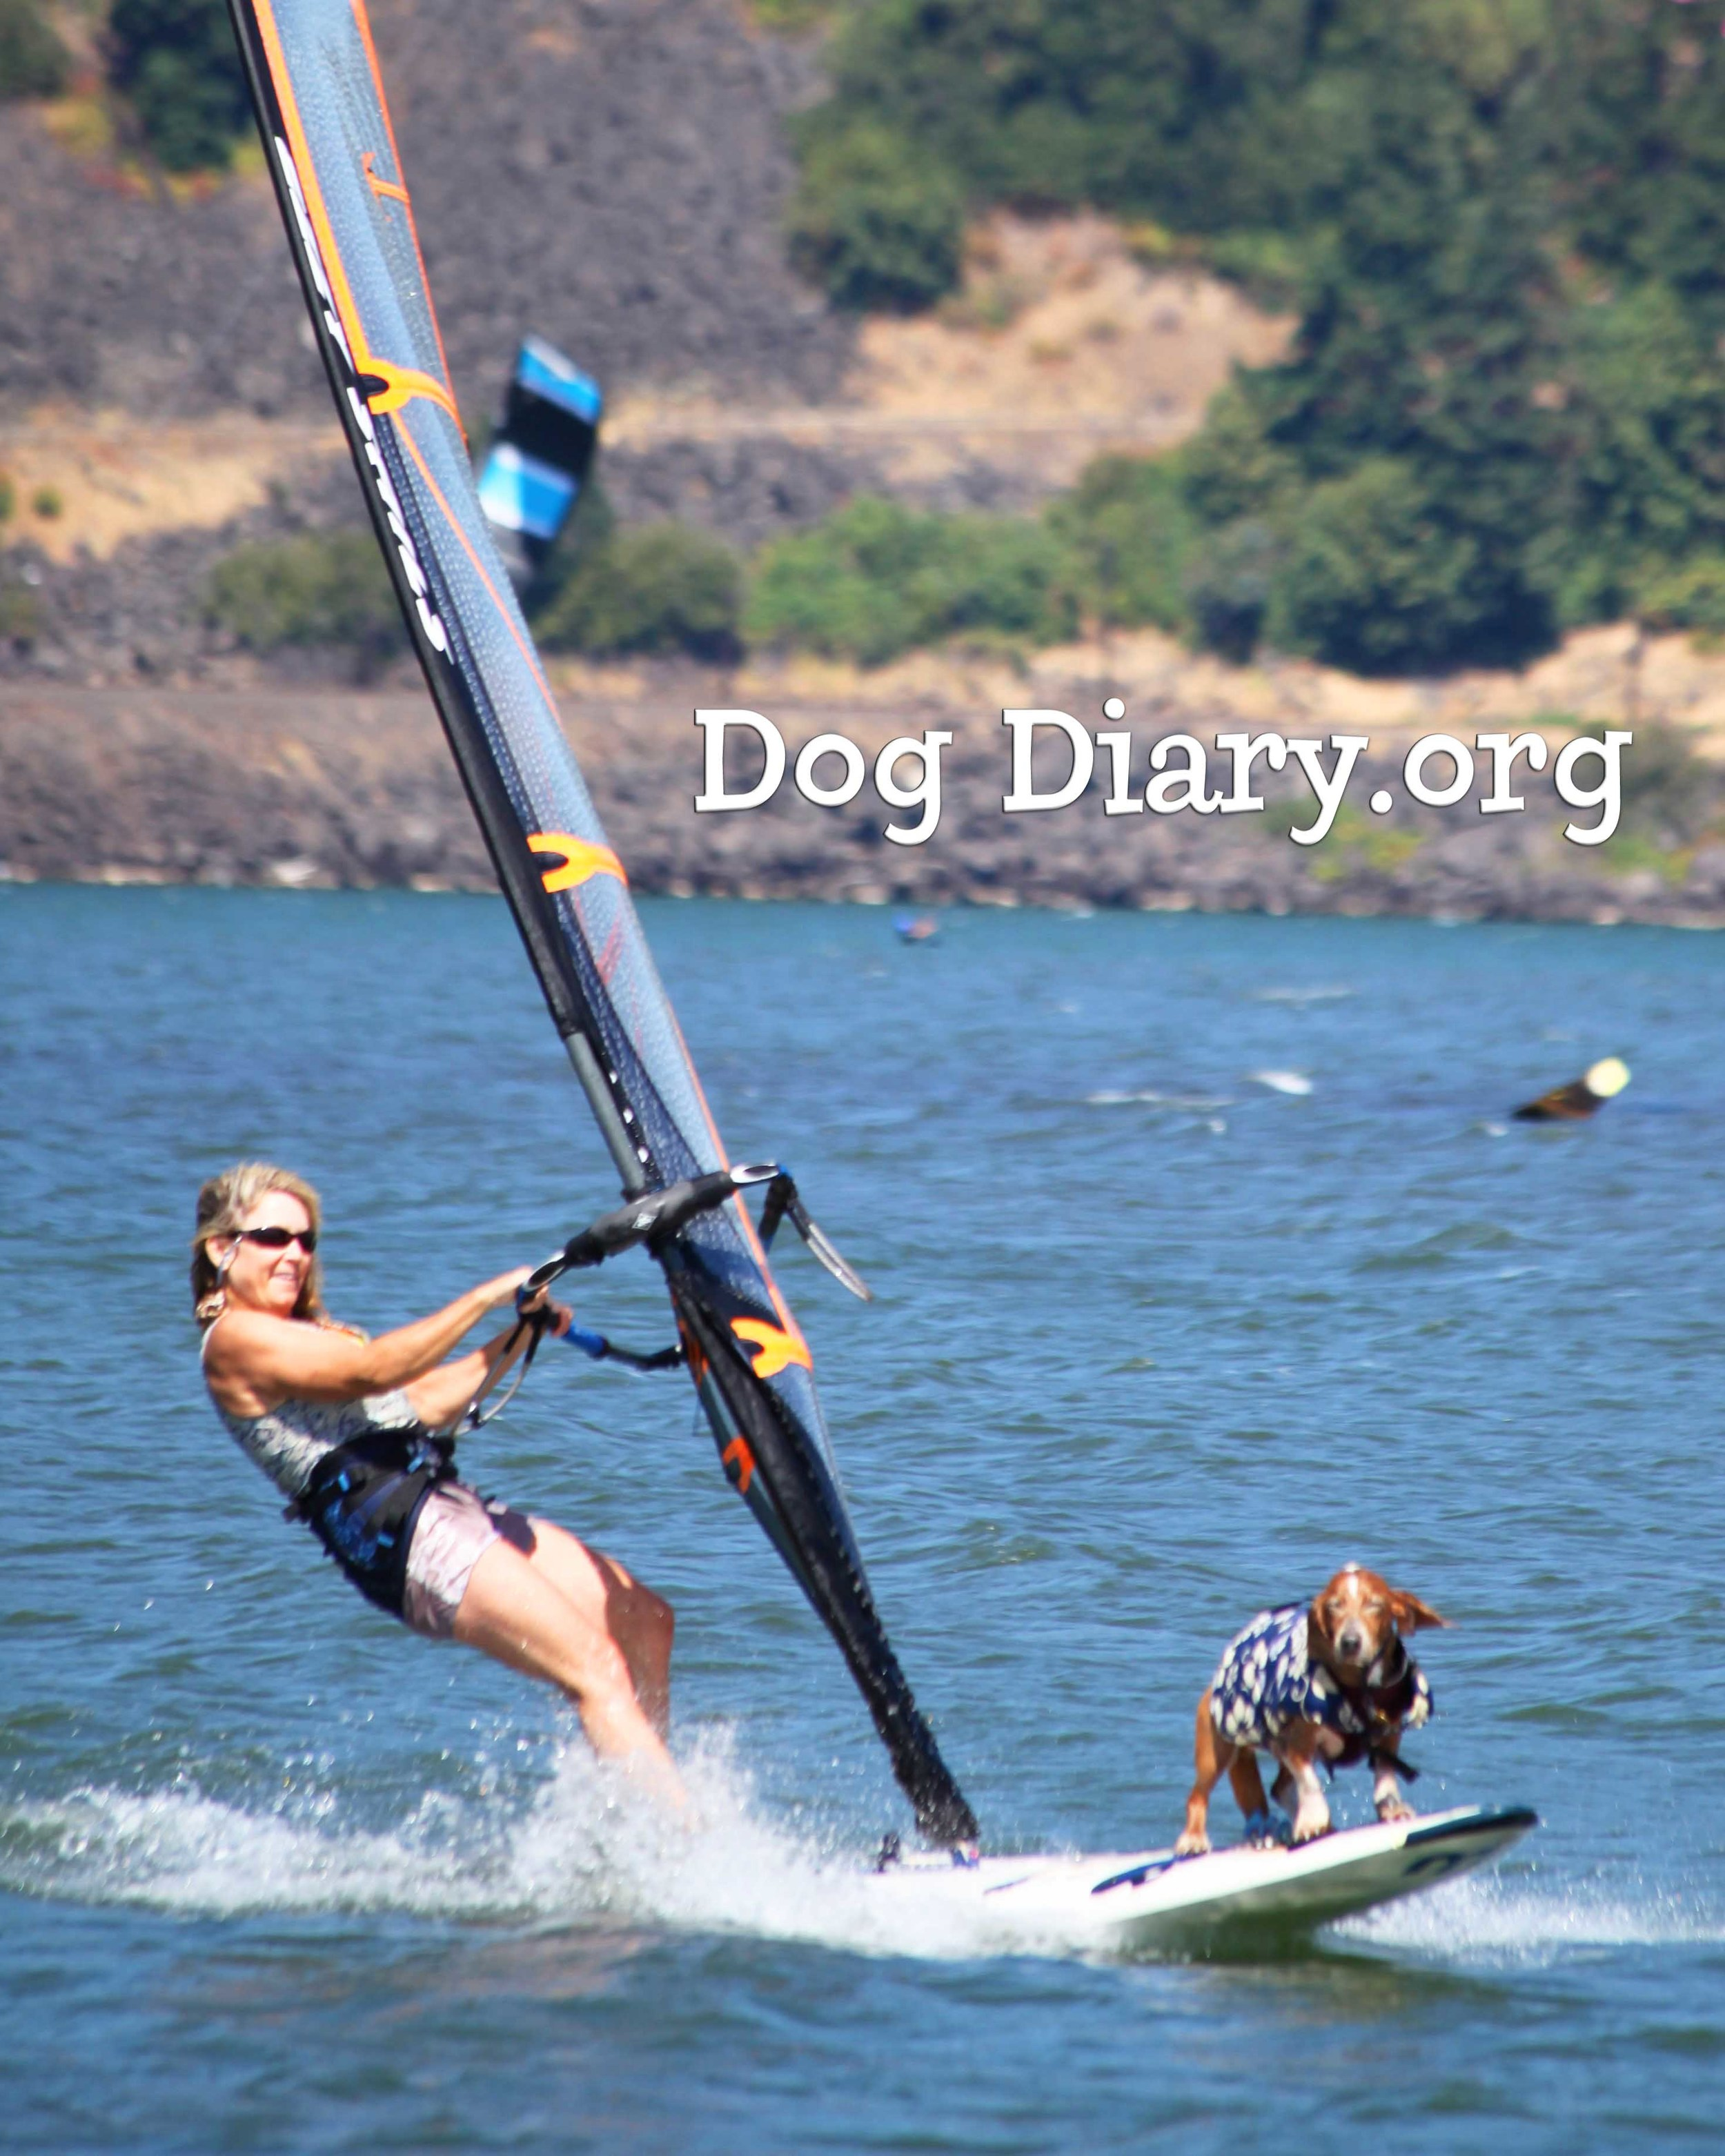 My favorite thing - windsurfing the Gorge. See it, smell it, feel it.